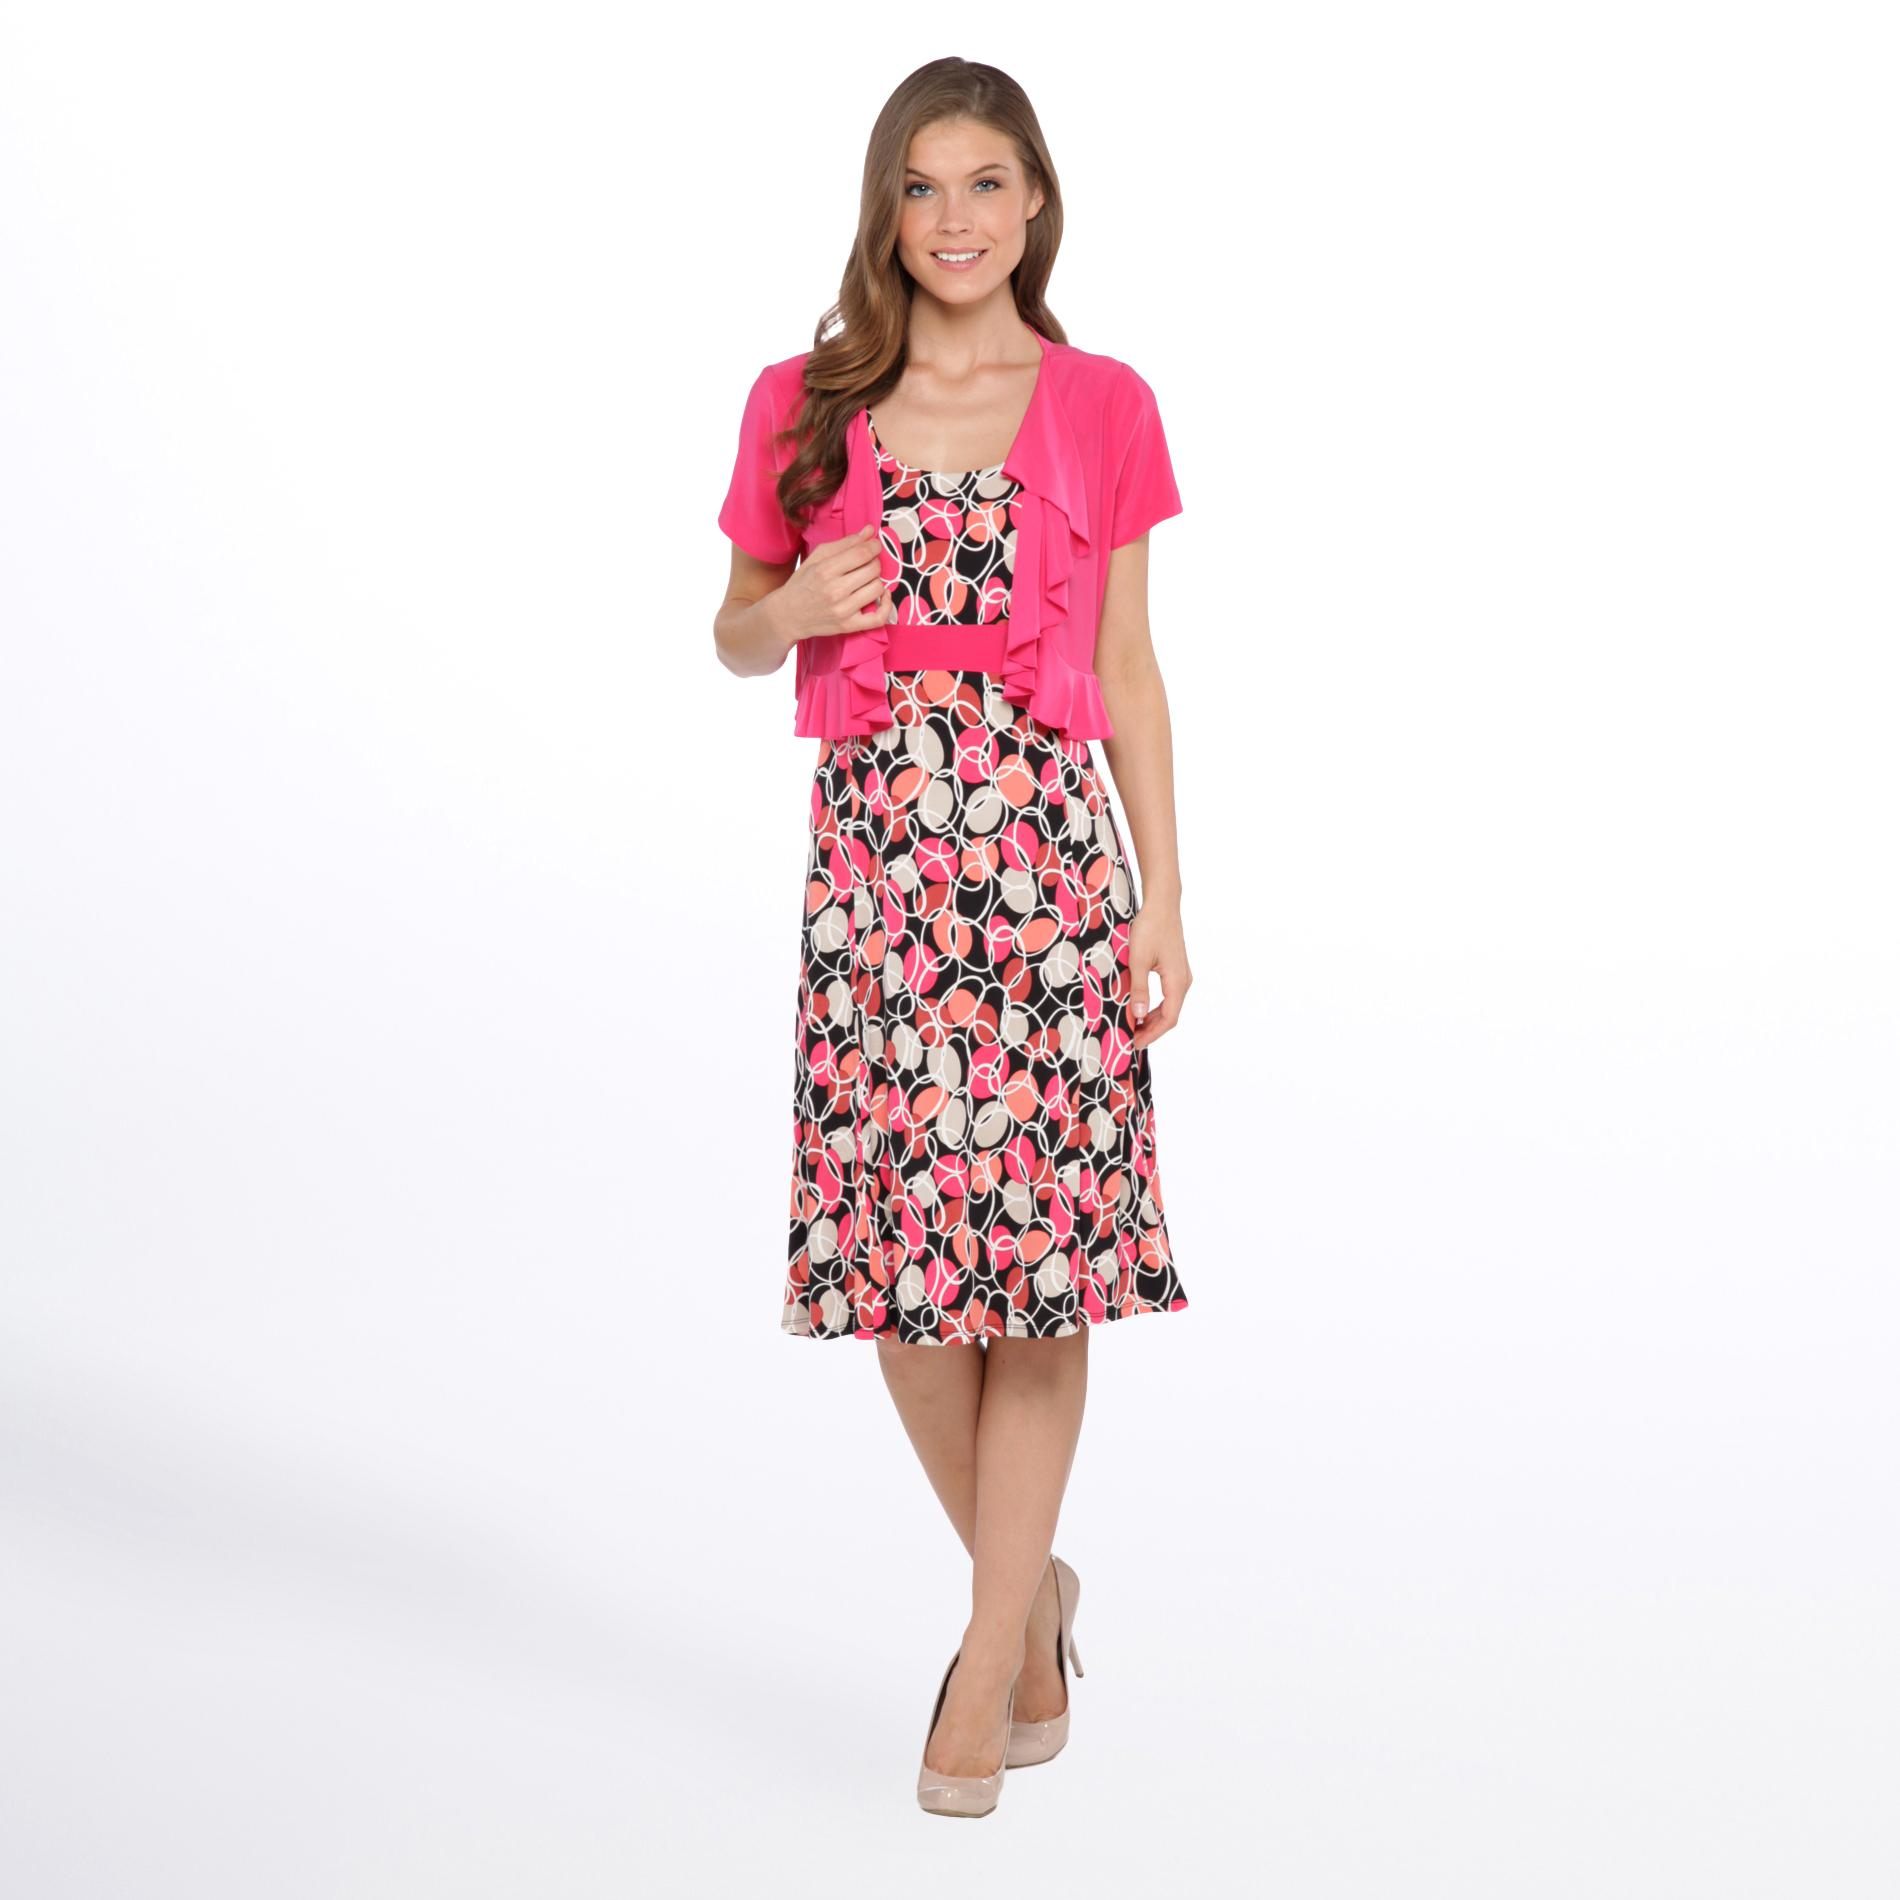 Women's Dress & Jacket - Circle Print at Sears.com